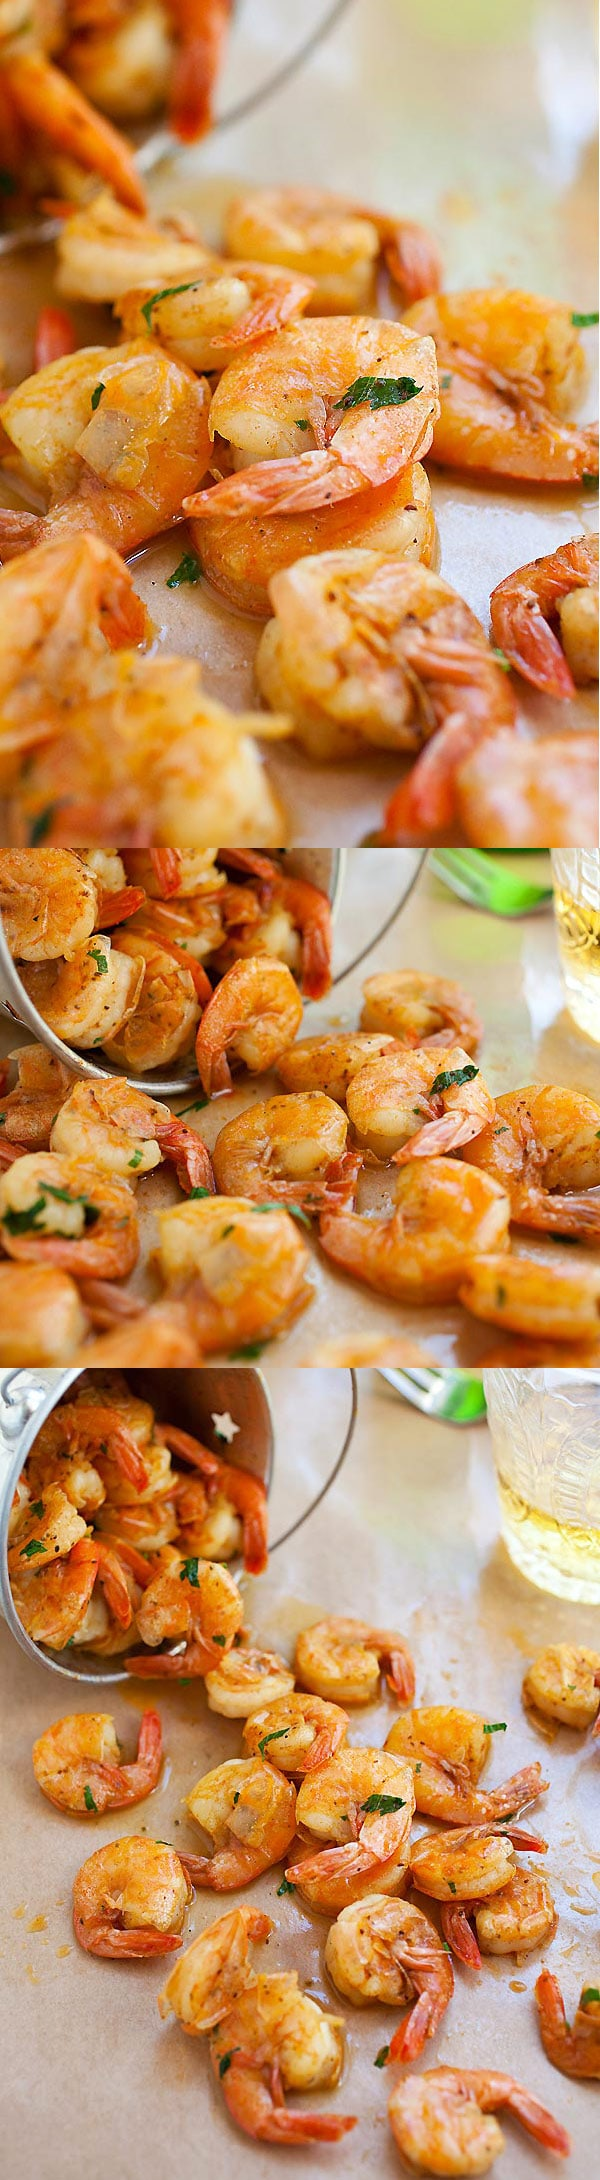 Peel and Eat Shrimp - the easiest shrimp recipe made with butter, beer and spices. Takes 10 mins to make and a staple for summertime | rasamalaysia.com